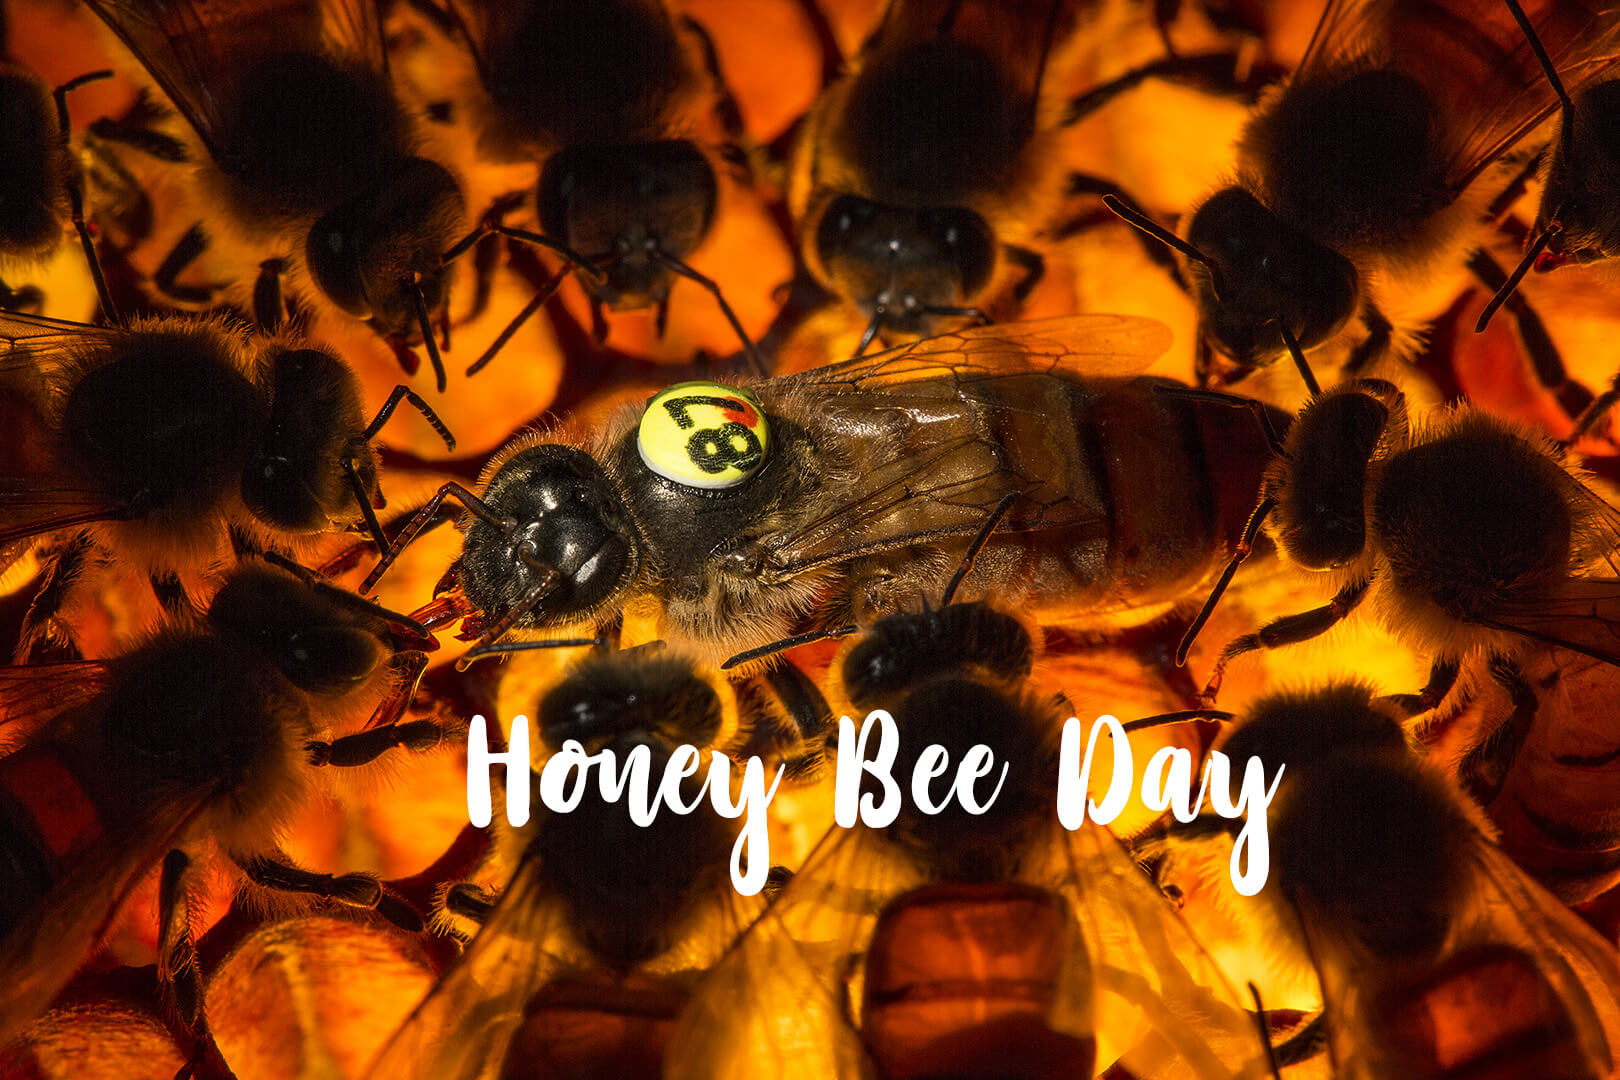 happy honey bee day image background pc hd wallpaper